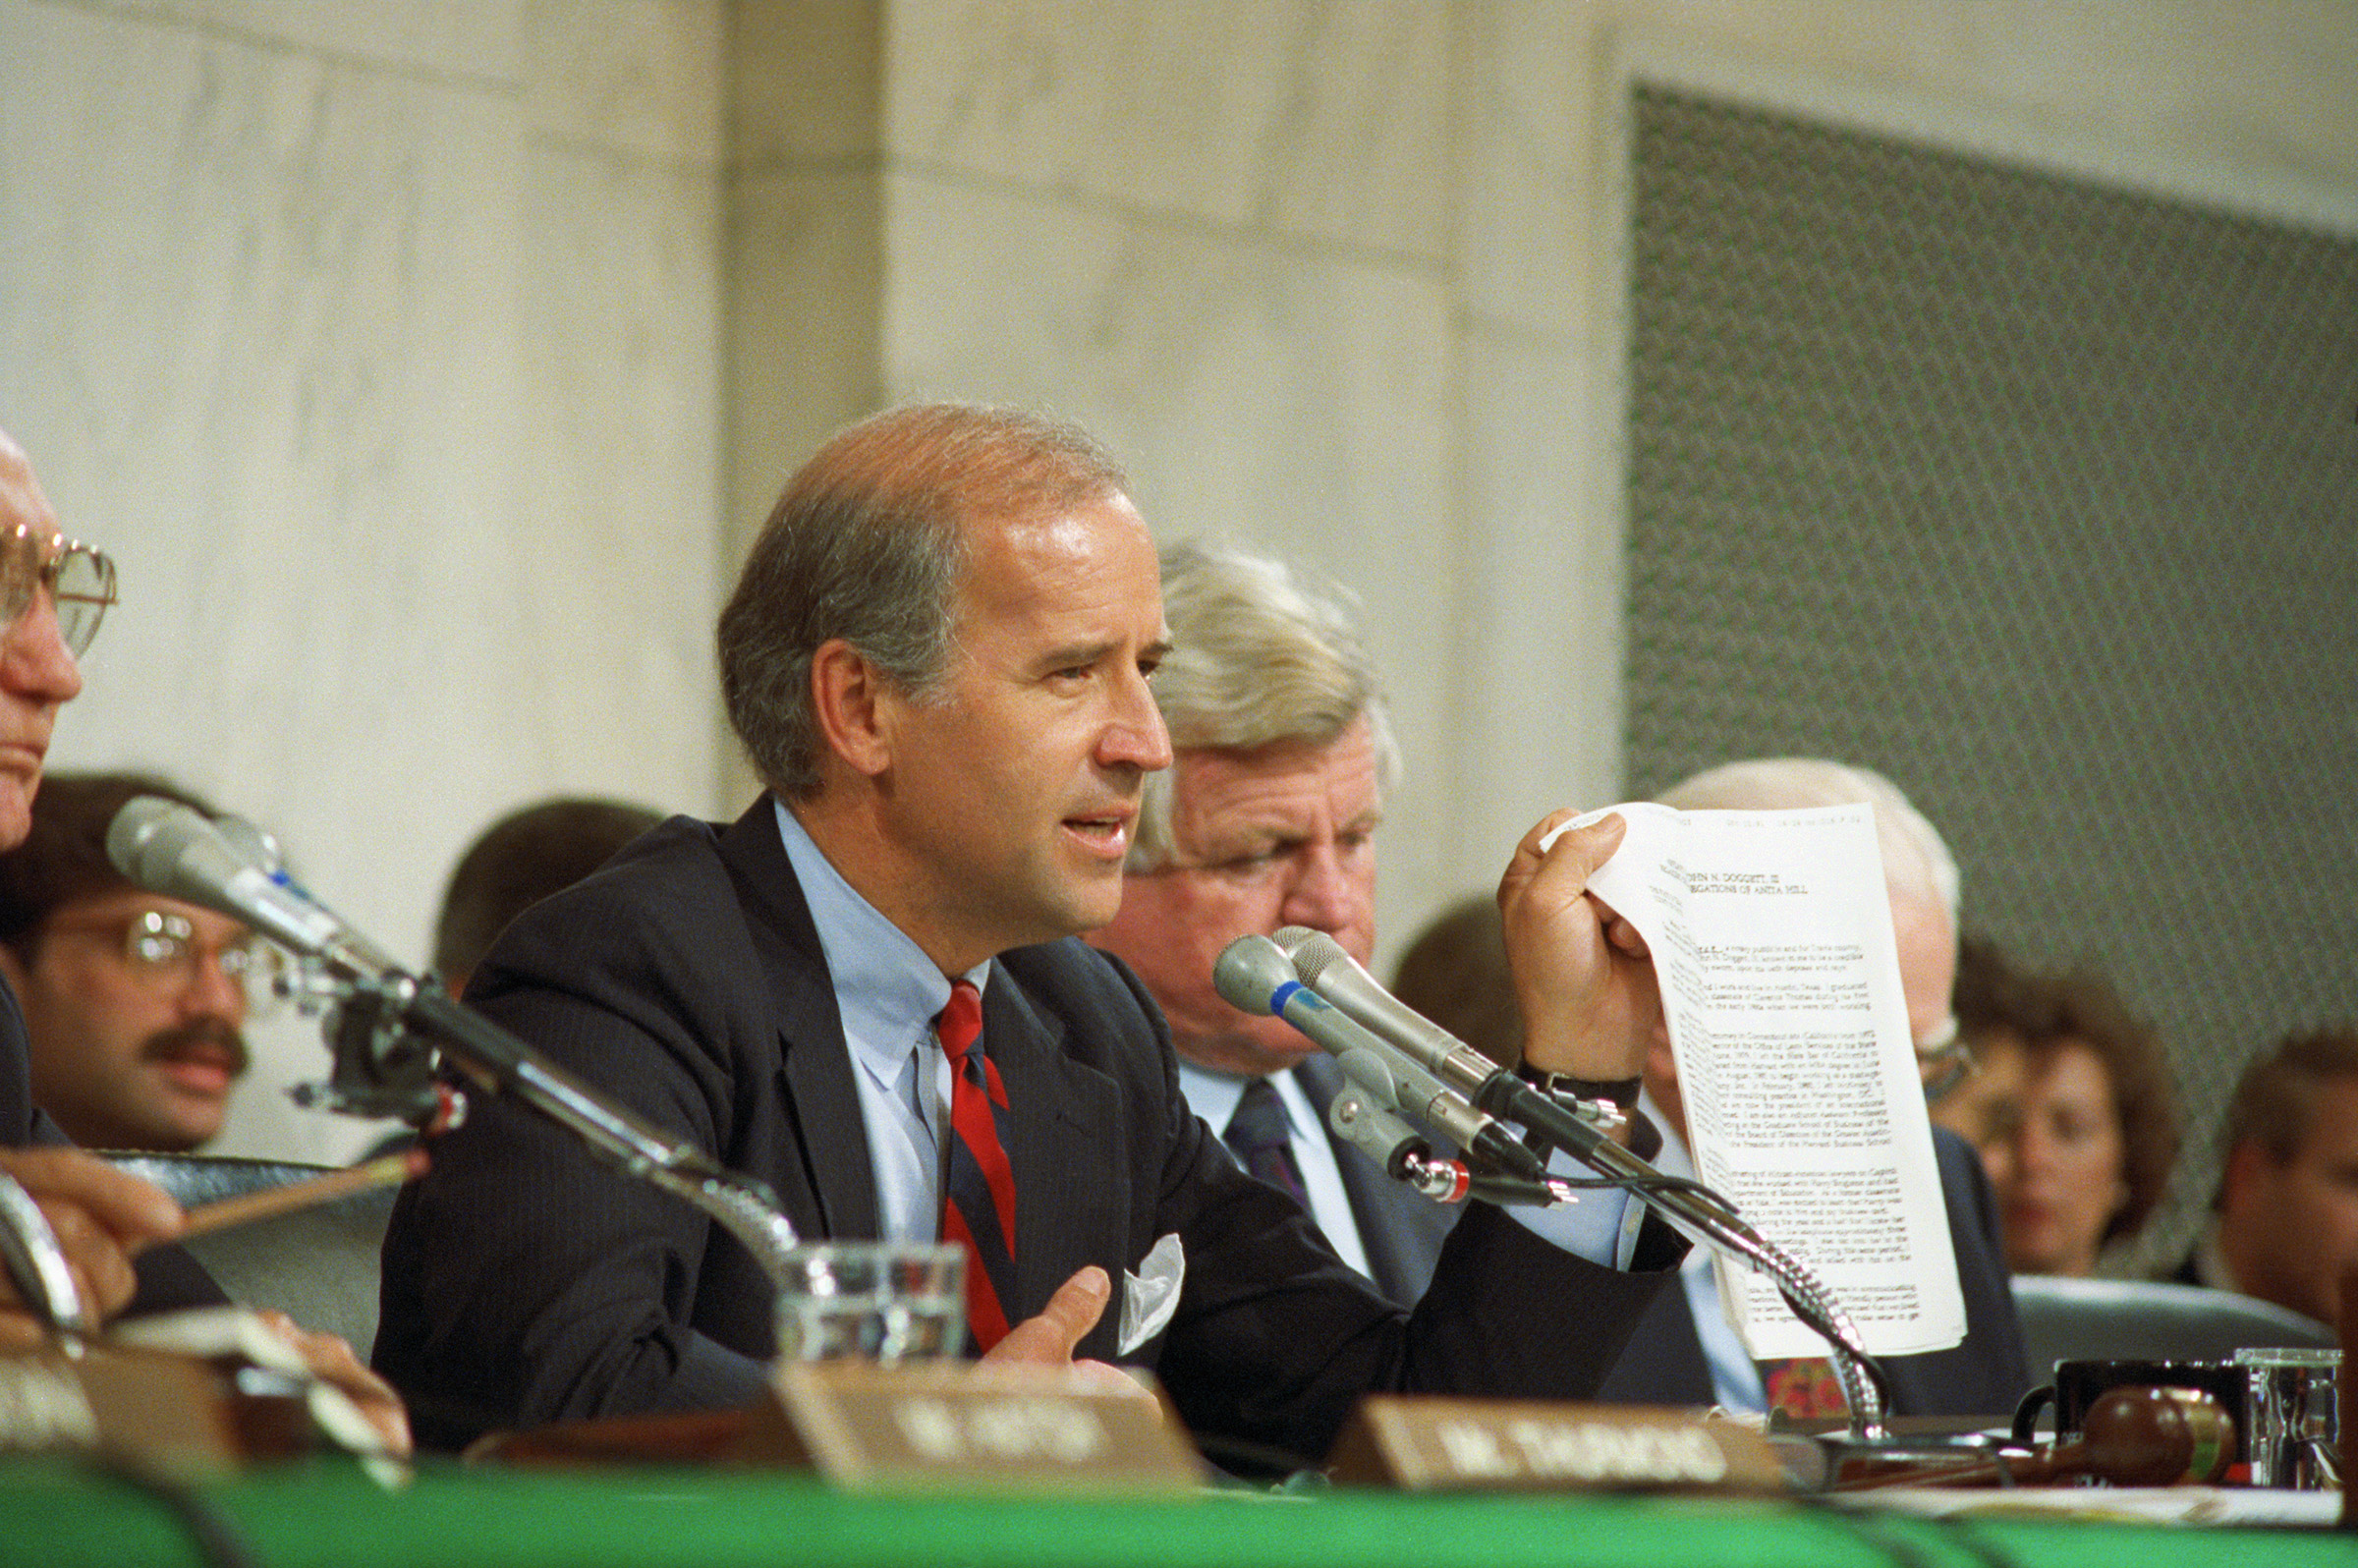 After Anita Hill accuses Clarence Thomas of sexual harassment, Biden presides over an all-white-male panel in the Senate in 1991